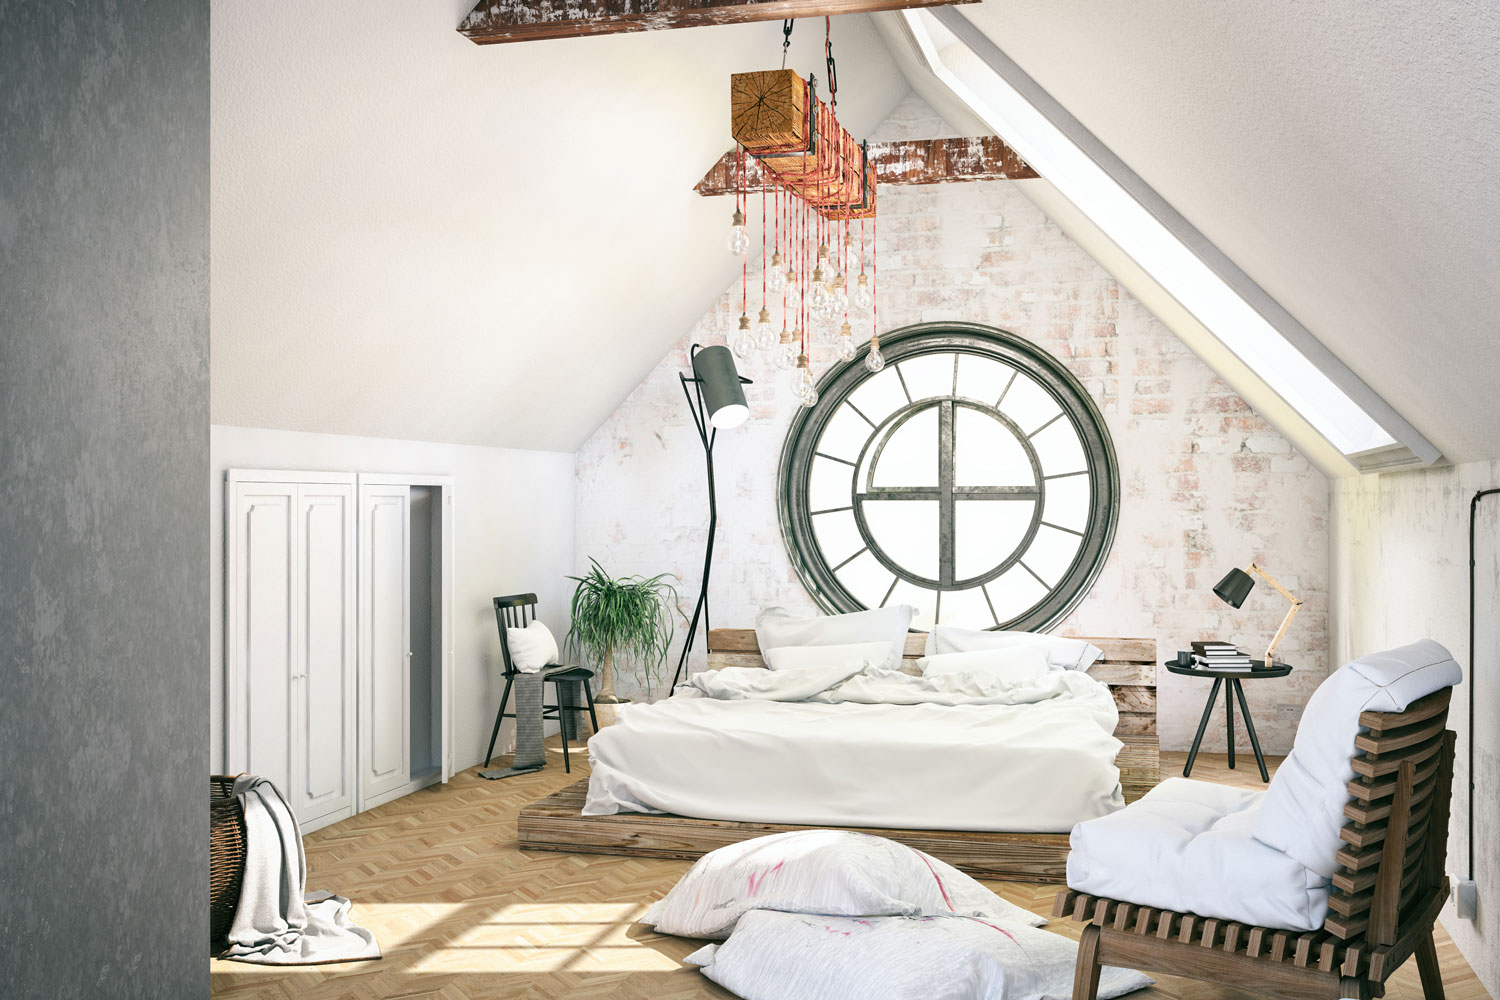 Loft bedroom with cozy design, How To Cool An Attic Bedroom [6 Methods To Try]